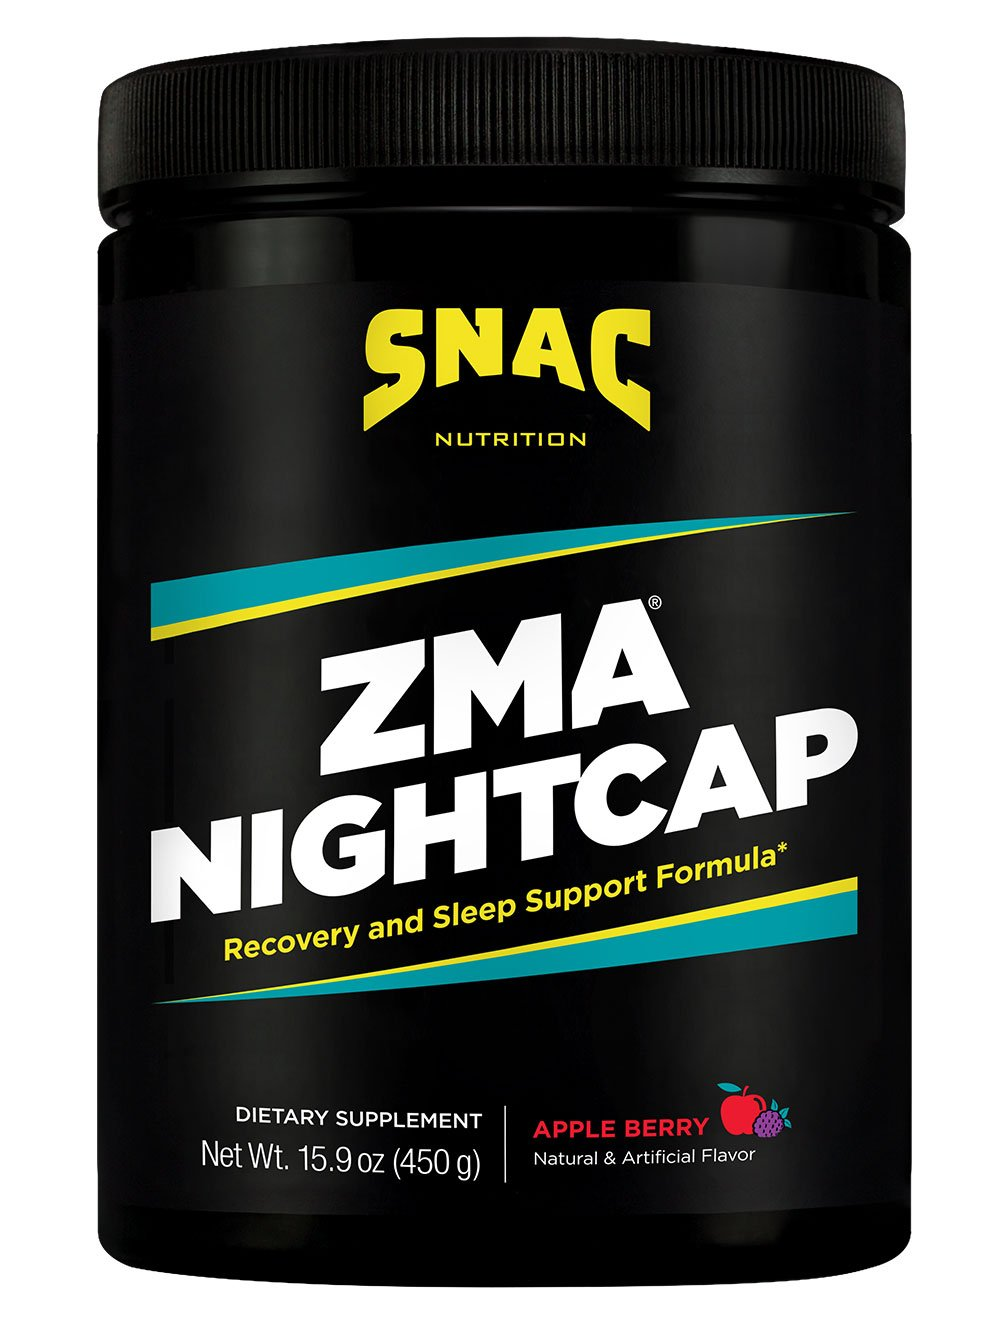 SNAC ZMA Nightcap Rapid Recovery Sleep Enhancer Drink Mix, Apple Berry, 450 Grams (15.9 Ounce)